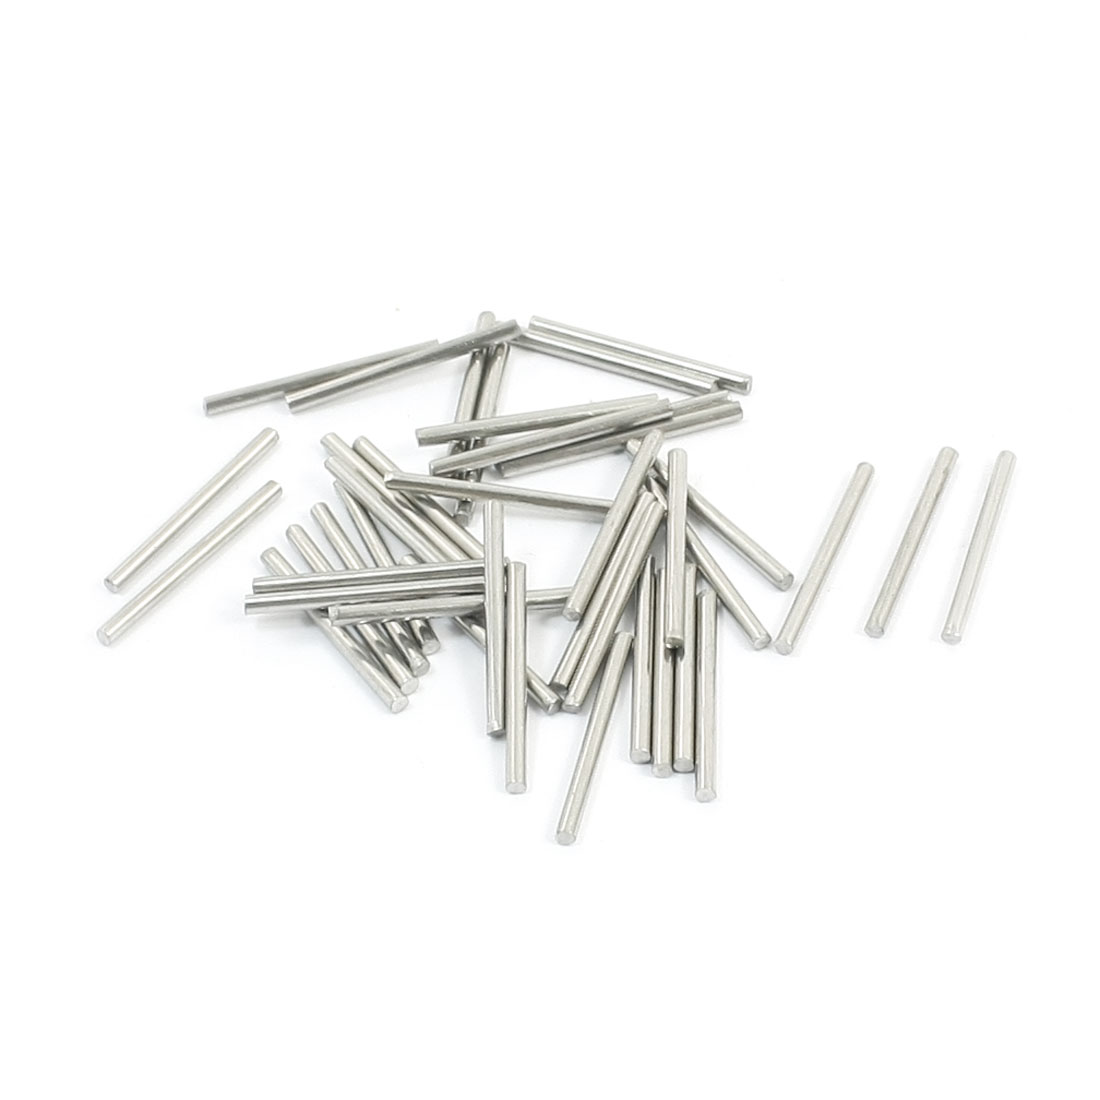 40Pcs 1.6mm Diameter Stainless Steel Motion Axle Circular Round Rod Bar 20mm Long